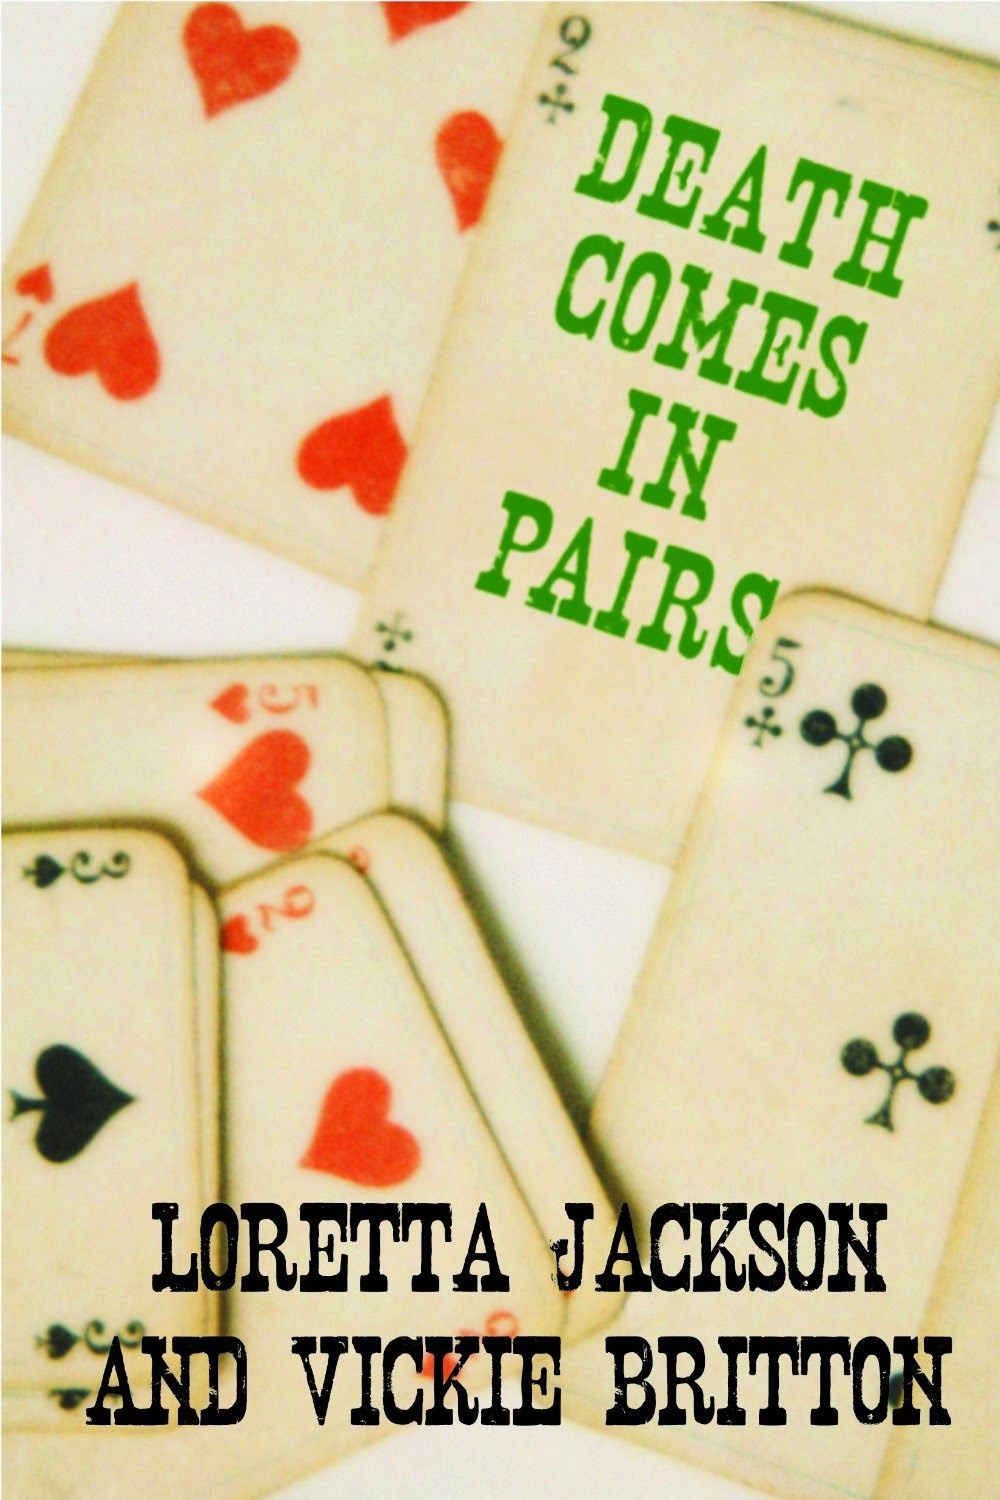 Amazon Giveaway  DEATH COMES IN PAIRS